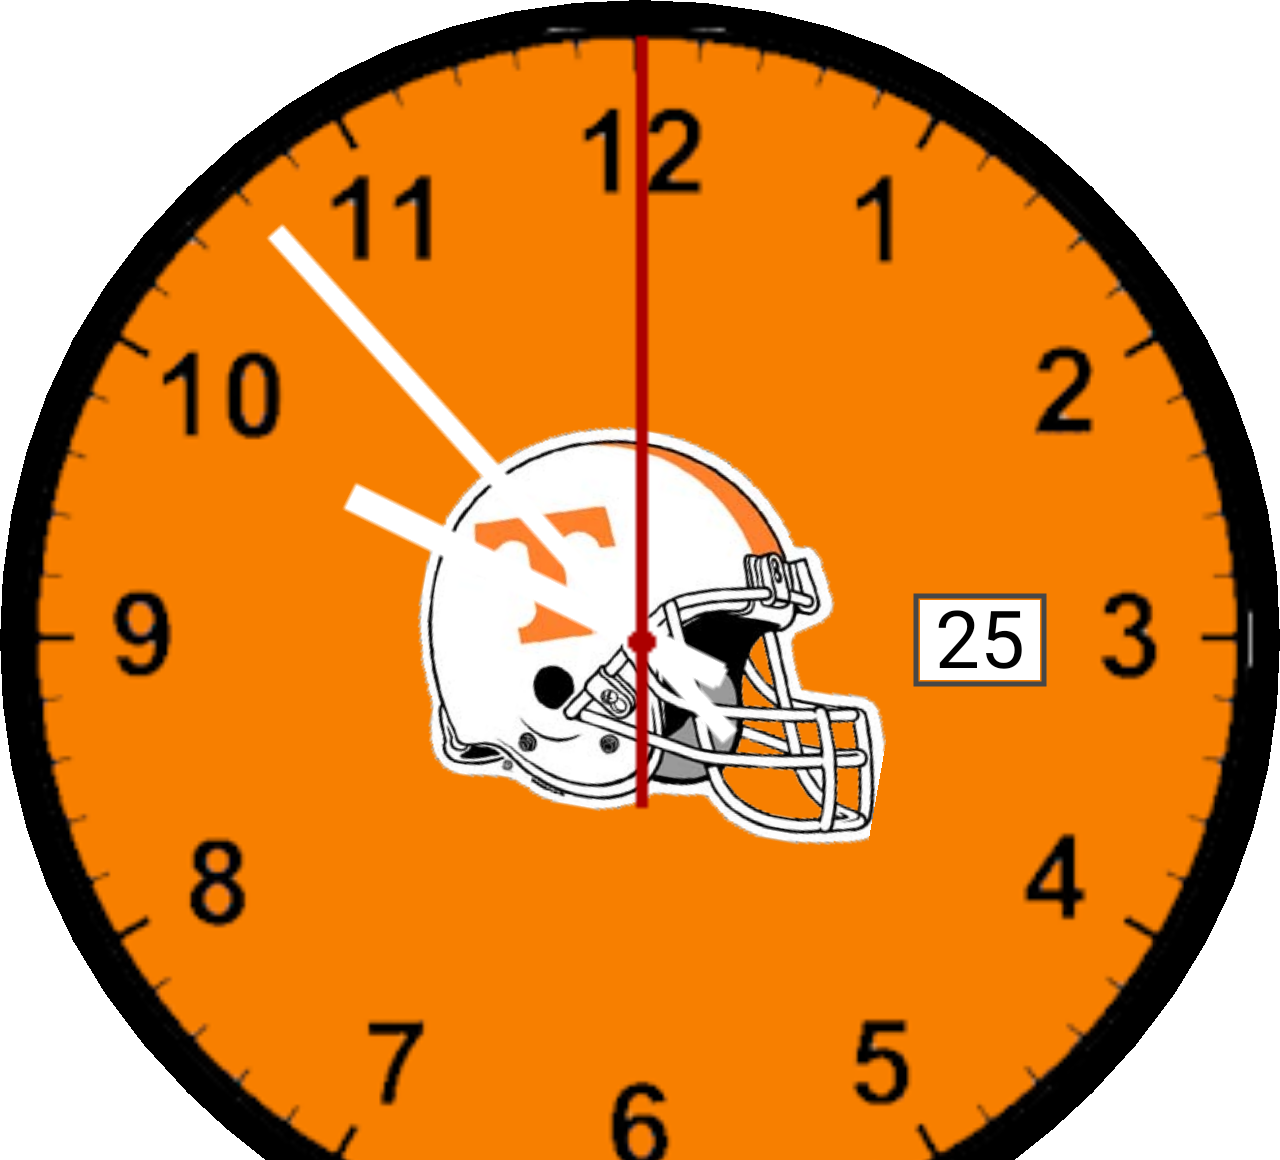 Tennessee vol football clipart image stock Faces with tag: Tennessee - FaceRepo image stock